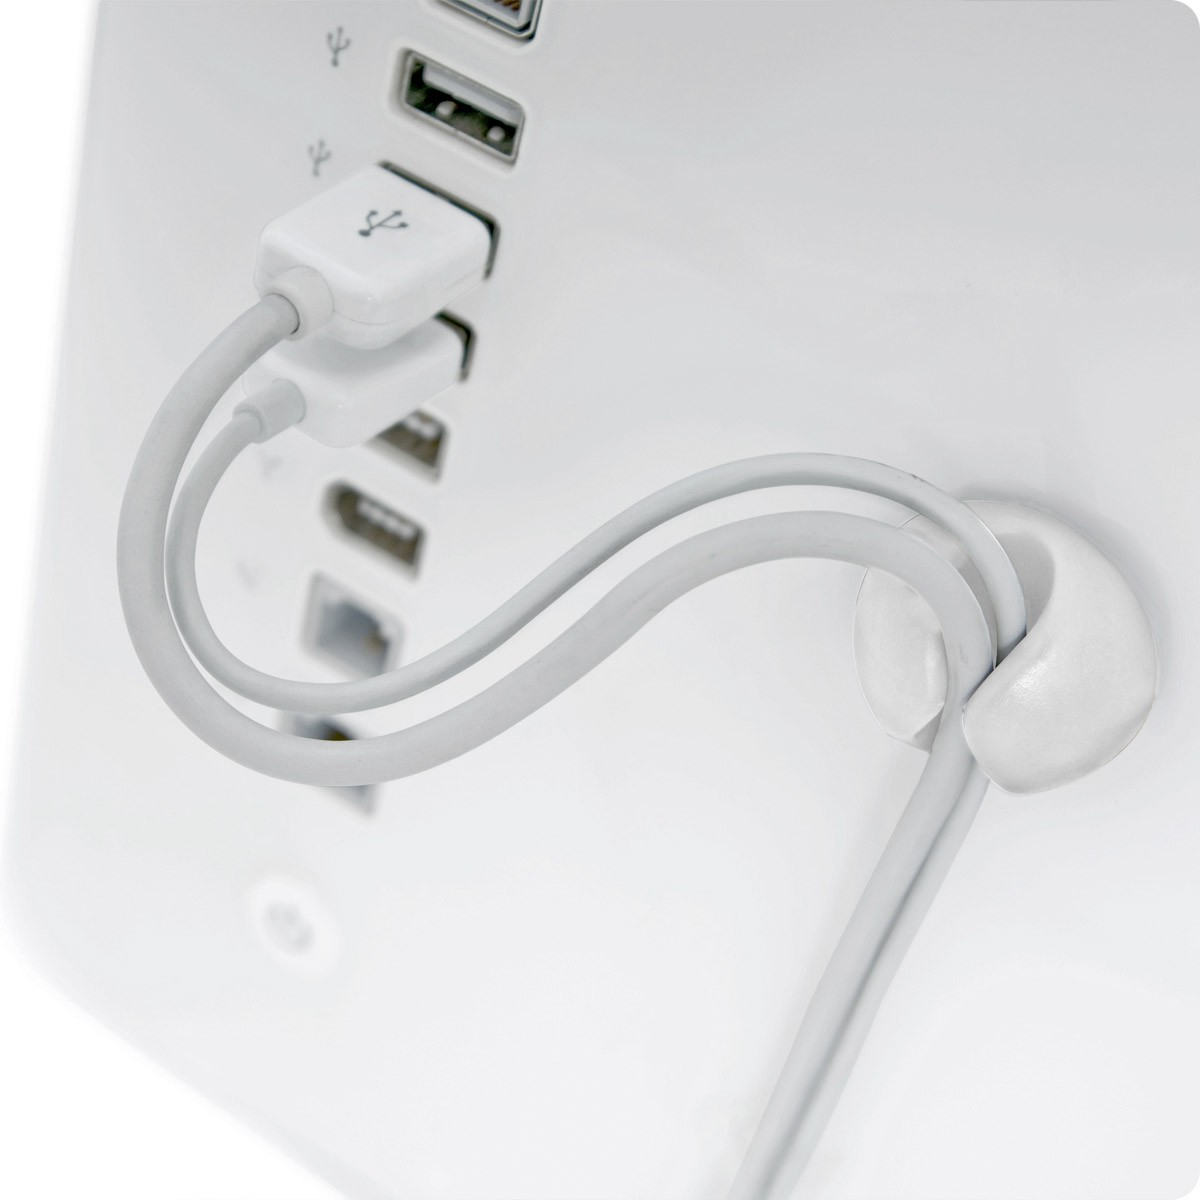 Bluelounge CableDrop - Cable Clips - White, CD-WH